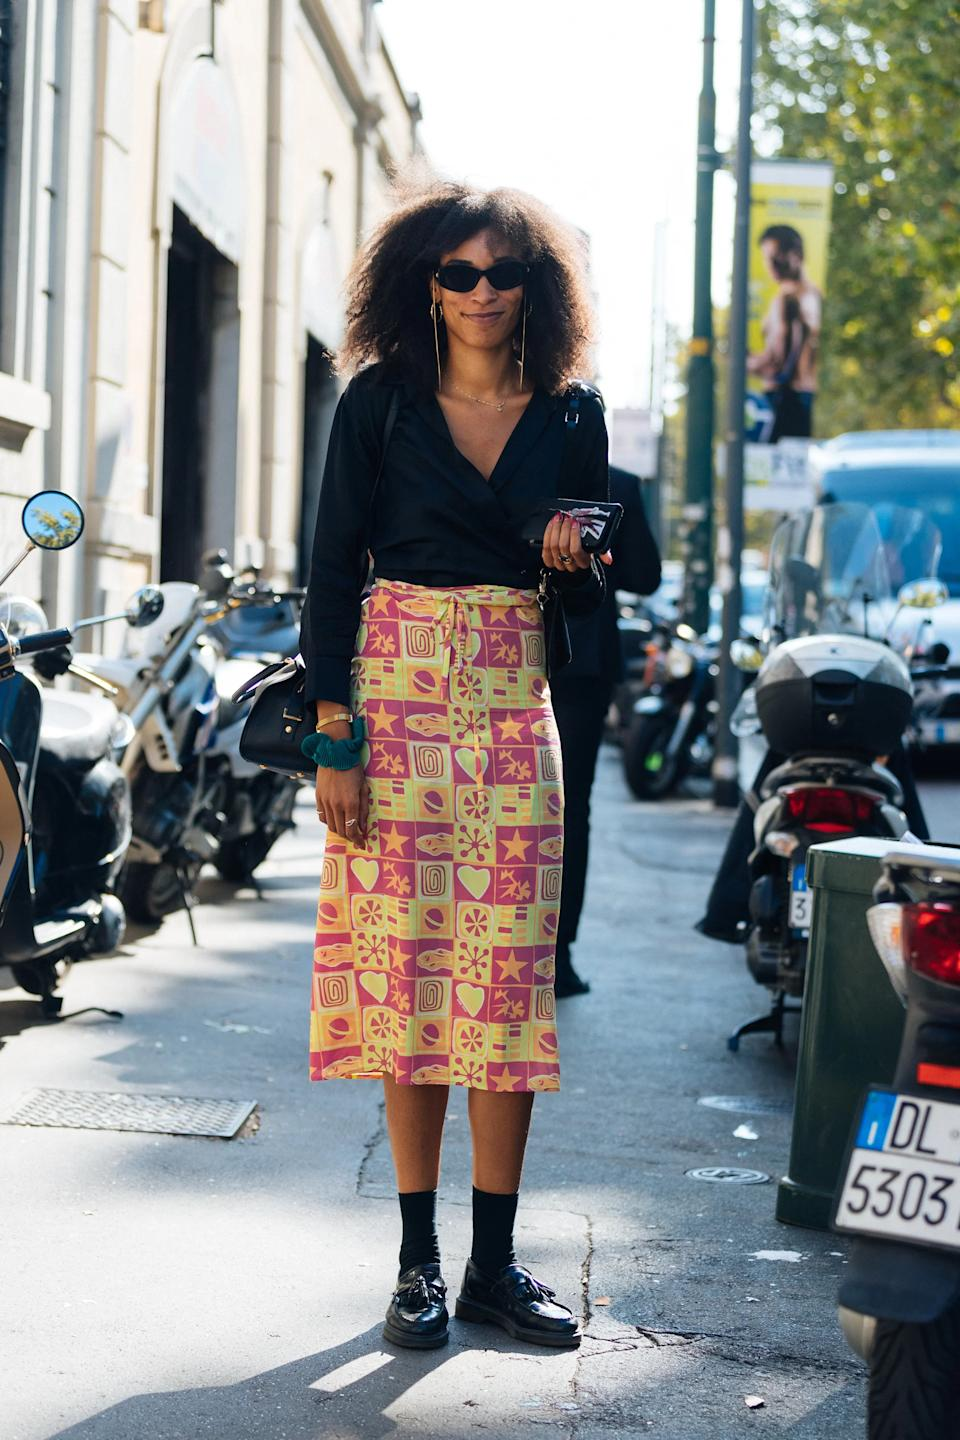 """<h2>Socks + Loafers</h2>From midi skirts to mini dresses, the socks and loafers combo is absolutely fool proof. <span class=""""copyright""""> Photographed by Melodie Jeng.</span>"""